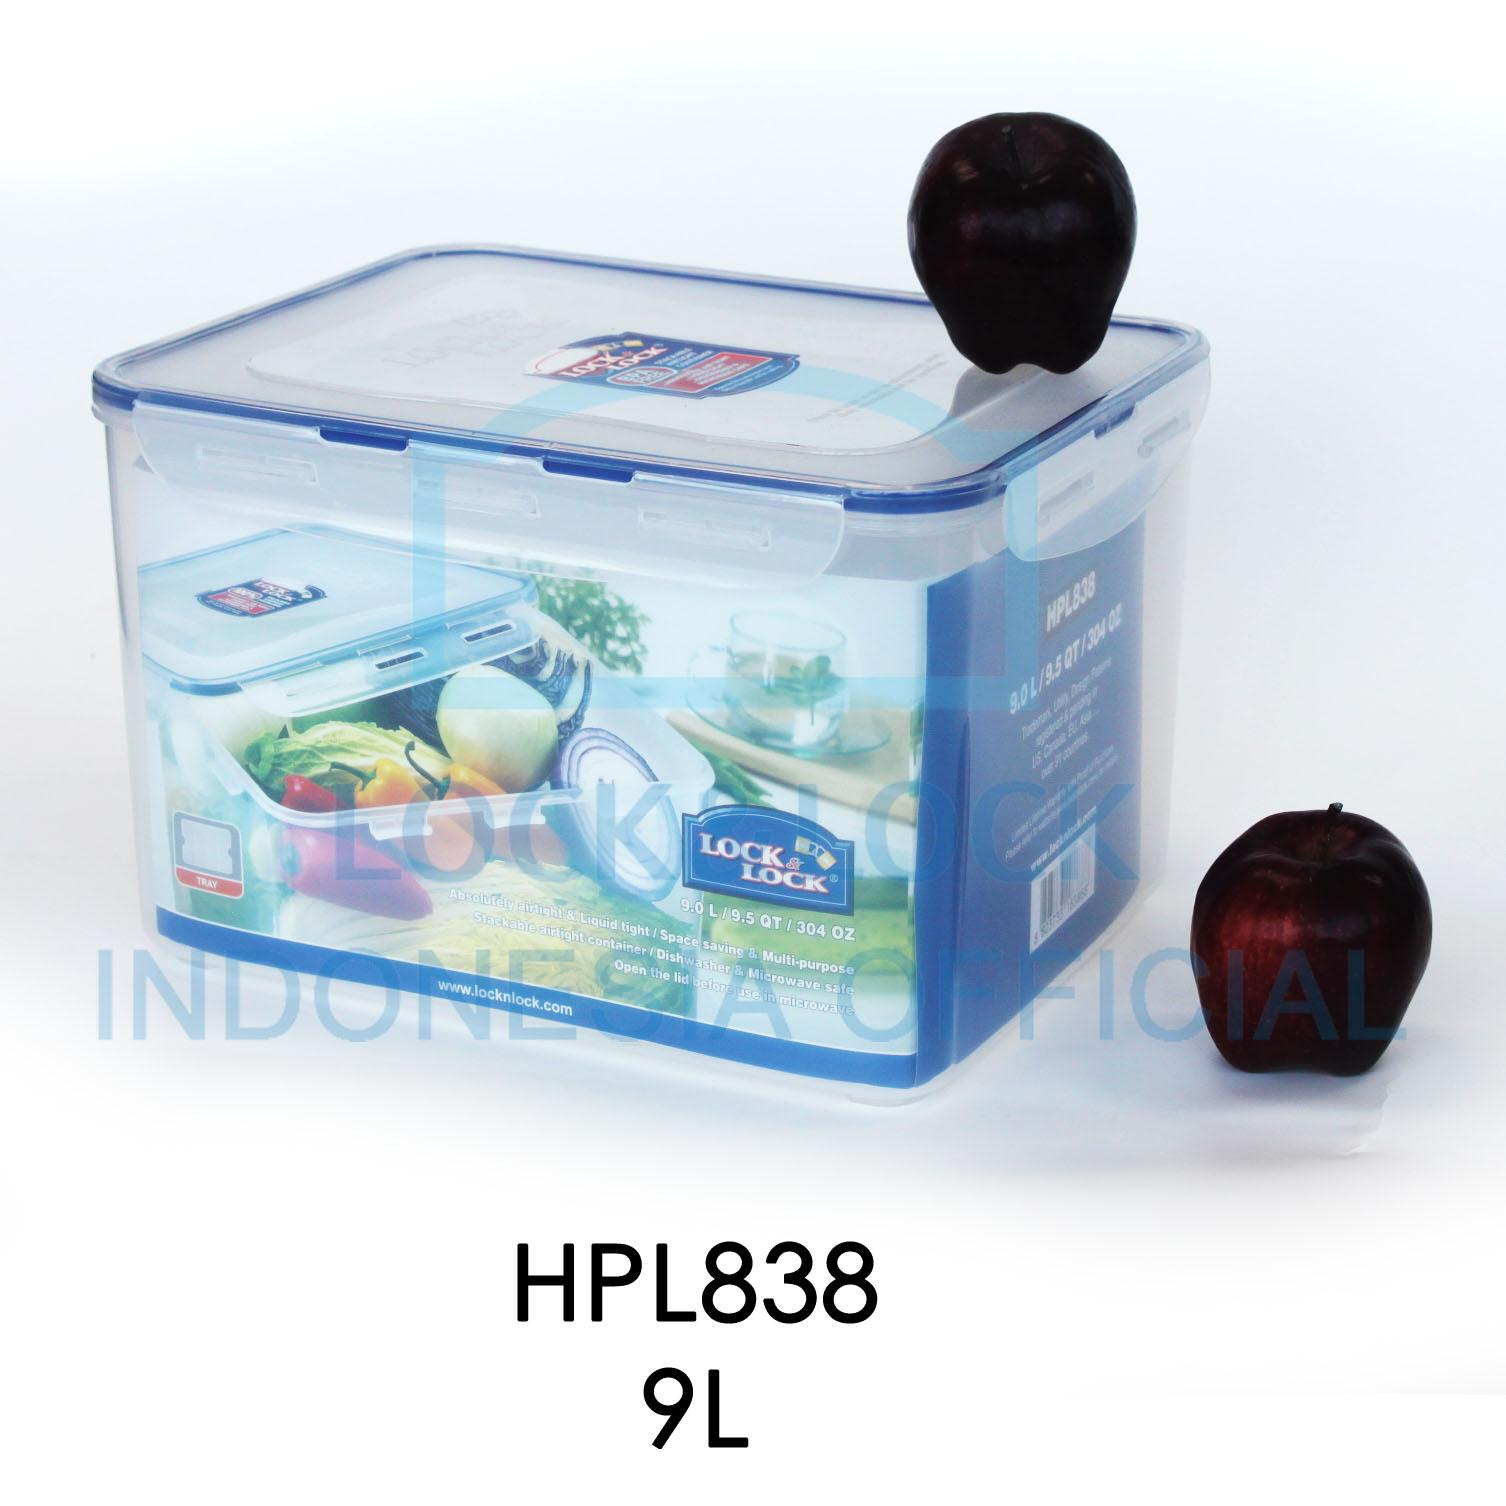 Locklock Food Container Hpl812h Rectangular Tall 15l Hpl808h 12l Detail Gambar Tempat Penyimpanan Makanan Serbaguna Hpl838 90l With